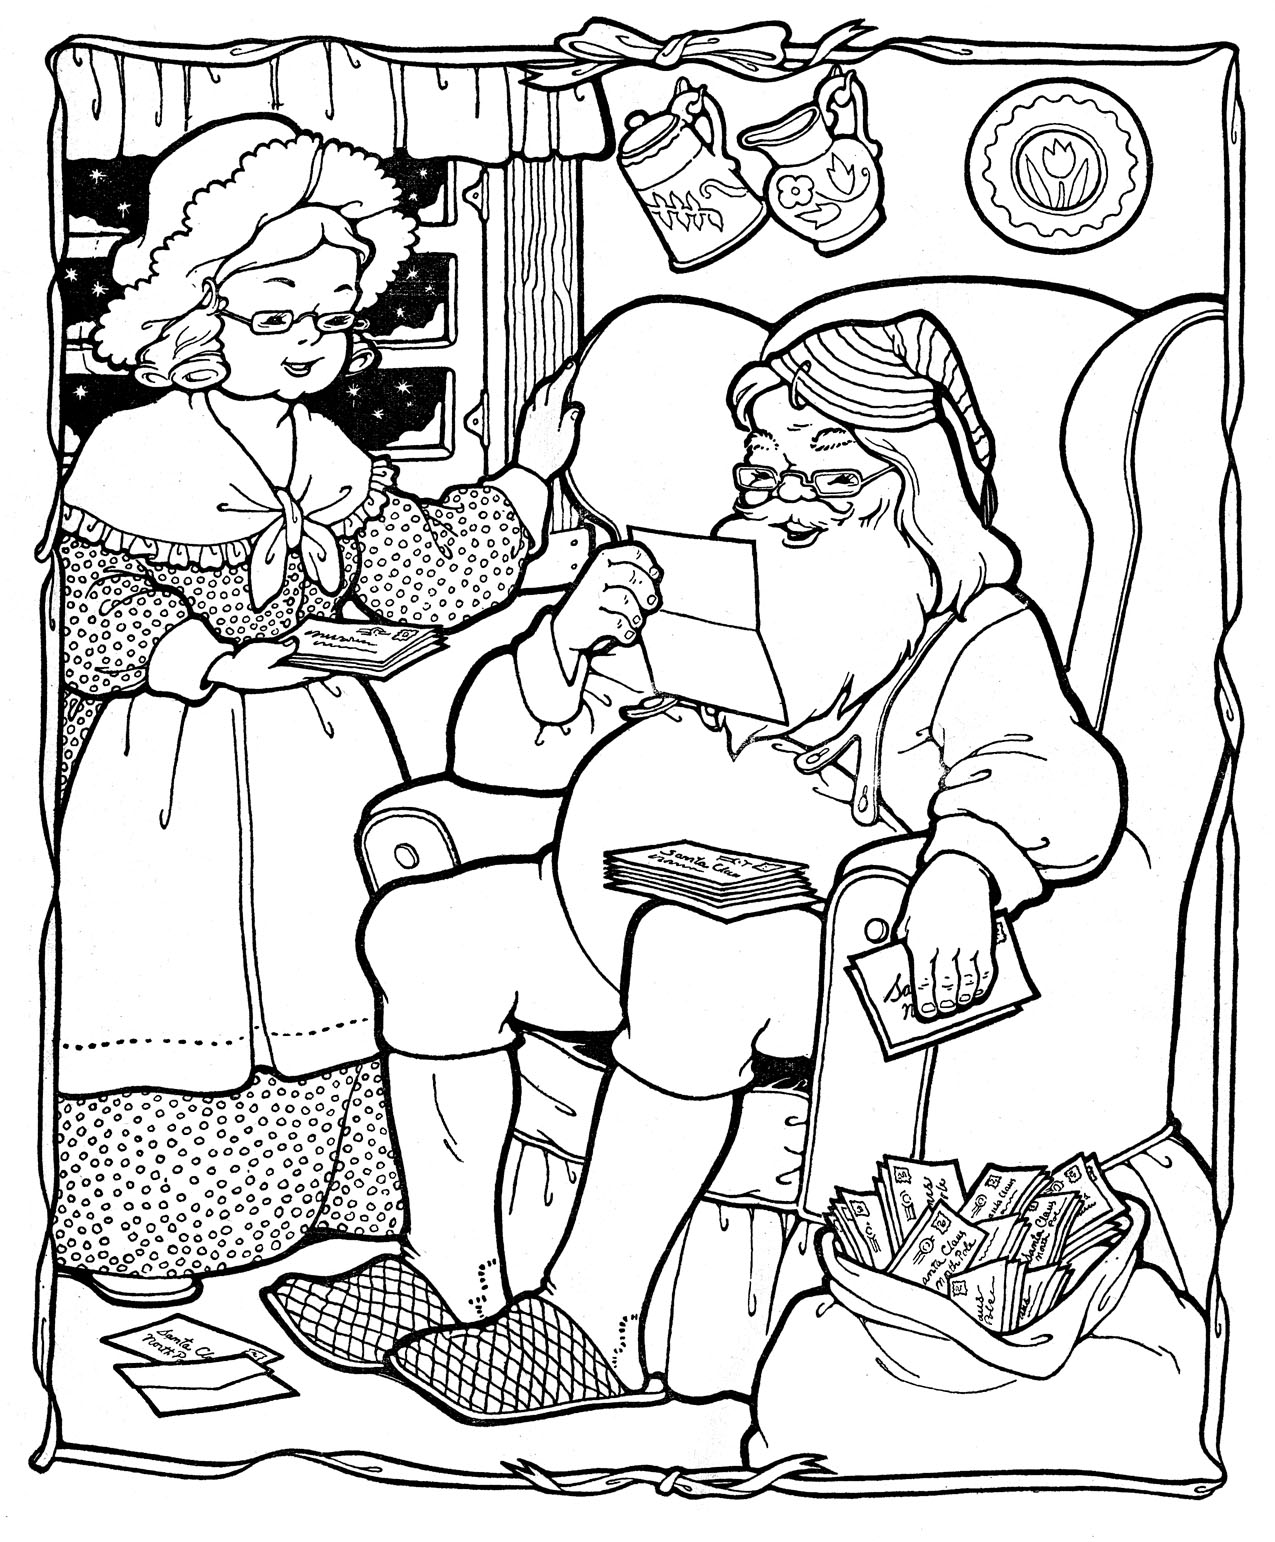 coloring christmas pages coloring pages christmas disney gtgt disney coloring pages christmas pages coloring